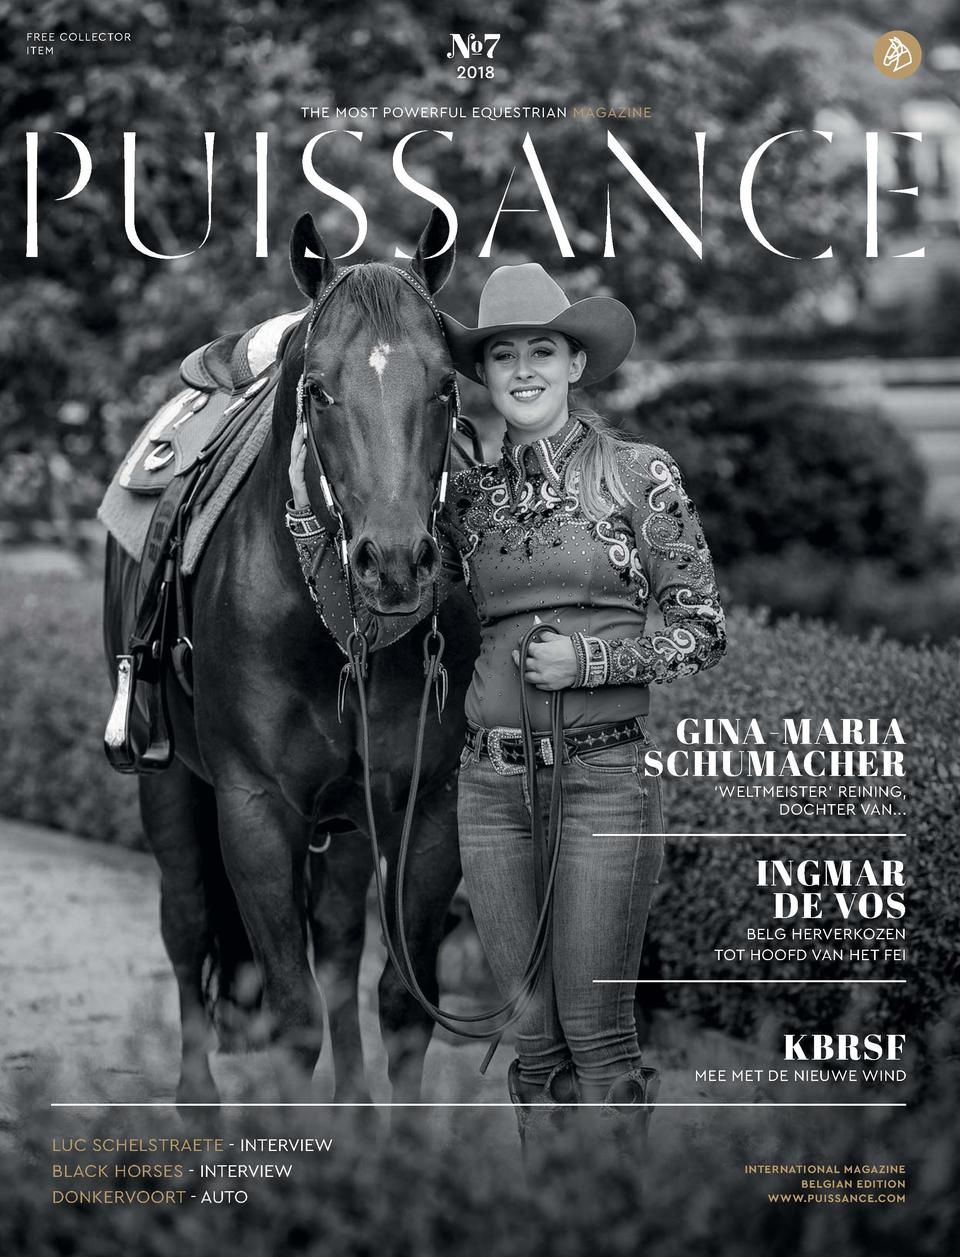 FREE COLLECTOR ITEM     7 2018  THE MOST POWERFUL EQUESTRIAN MAGAZINE  GINA-MARIA SCHUMACHER    WELTMEISTER    REINING, DO...